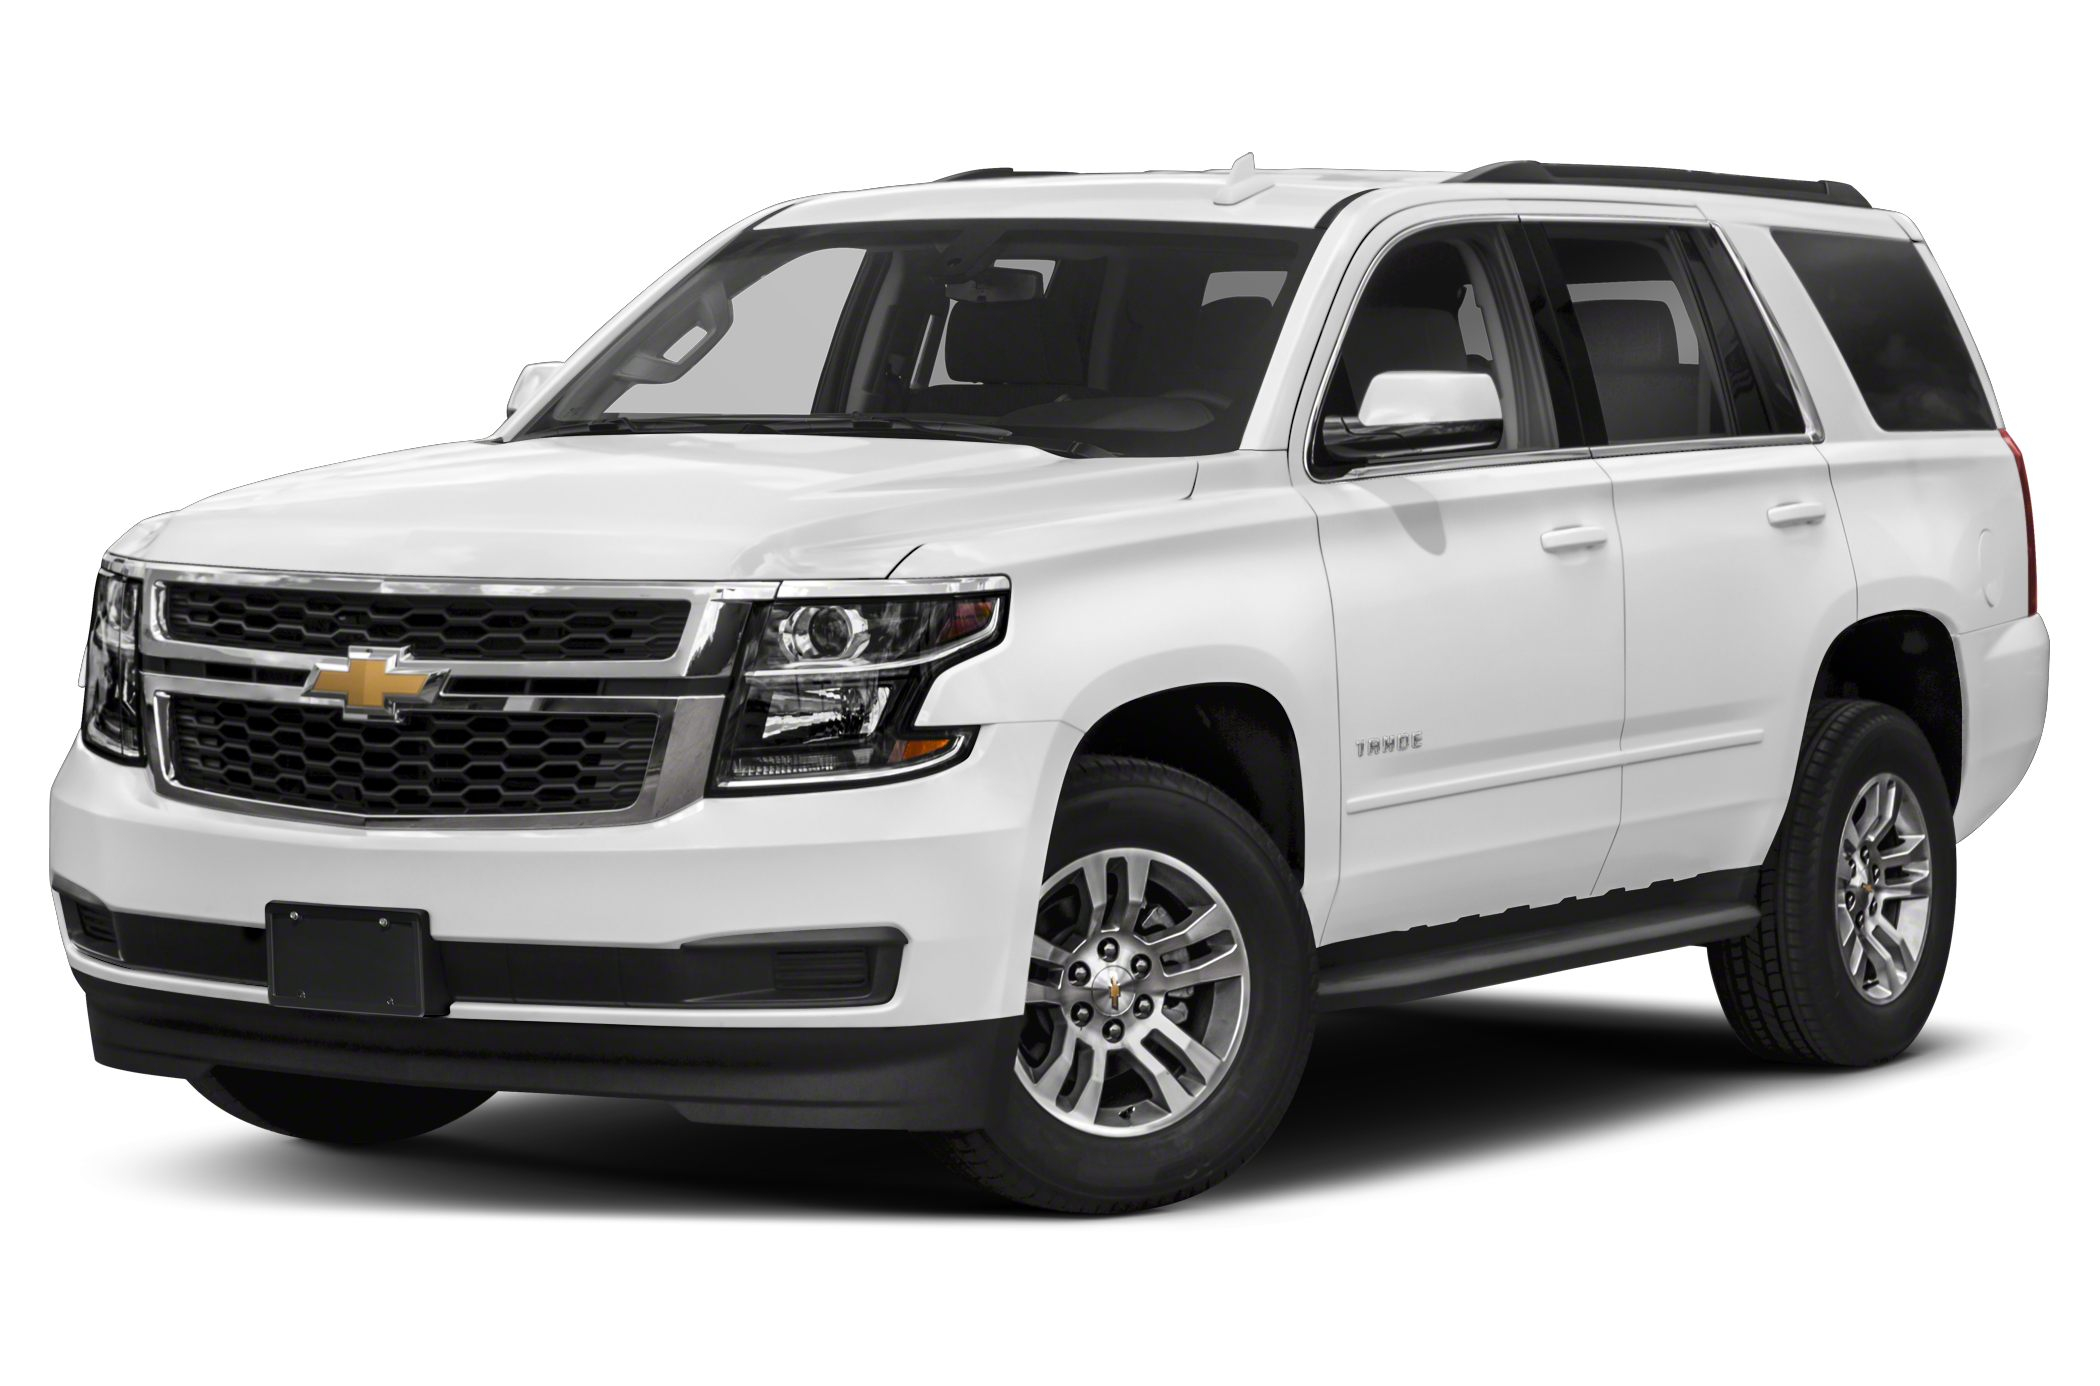 Great Deals On A New 2019 Chevrolet Tahoe Lt 4X4 At The 2021 Chevrolet Tahoe Lt Invoice, Msrp, Near Me